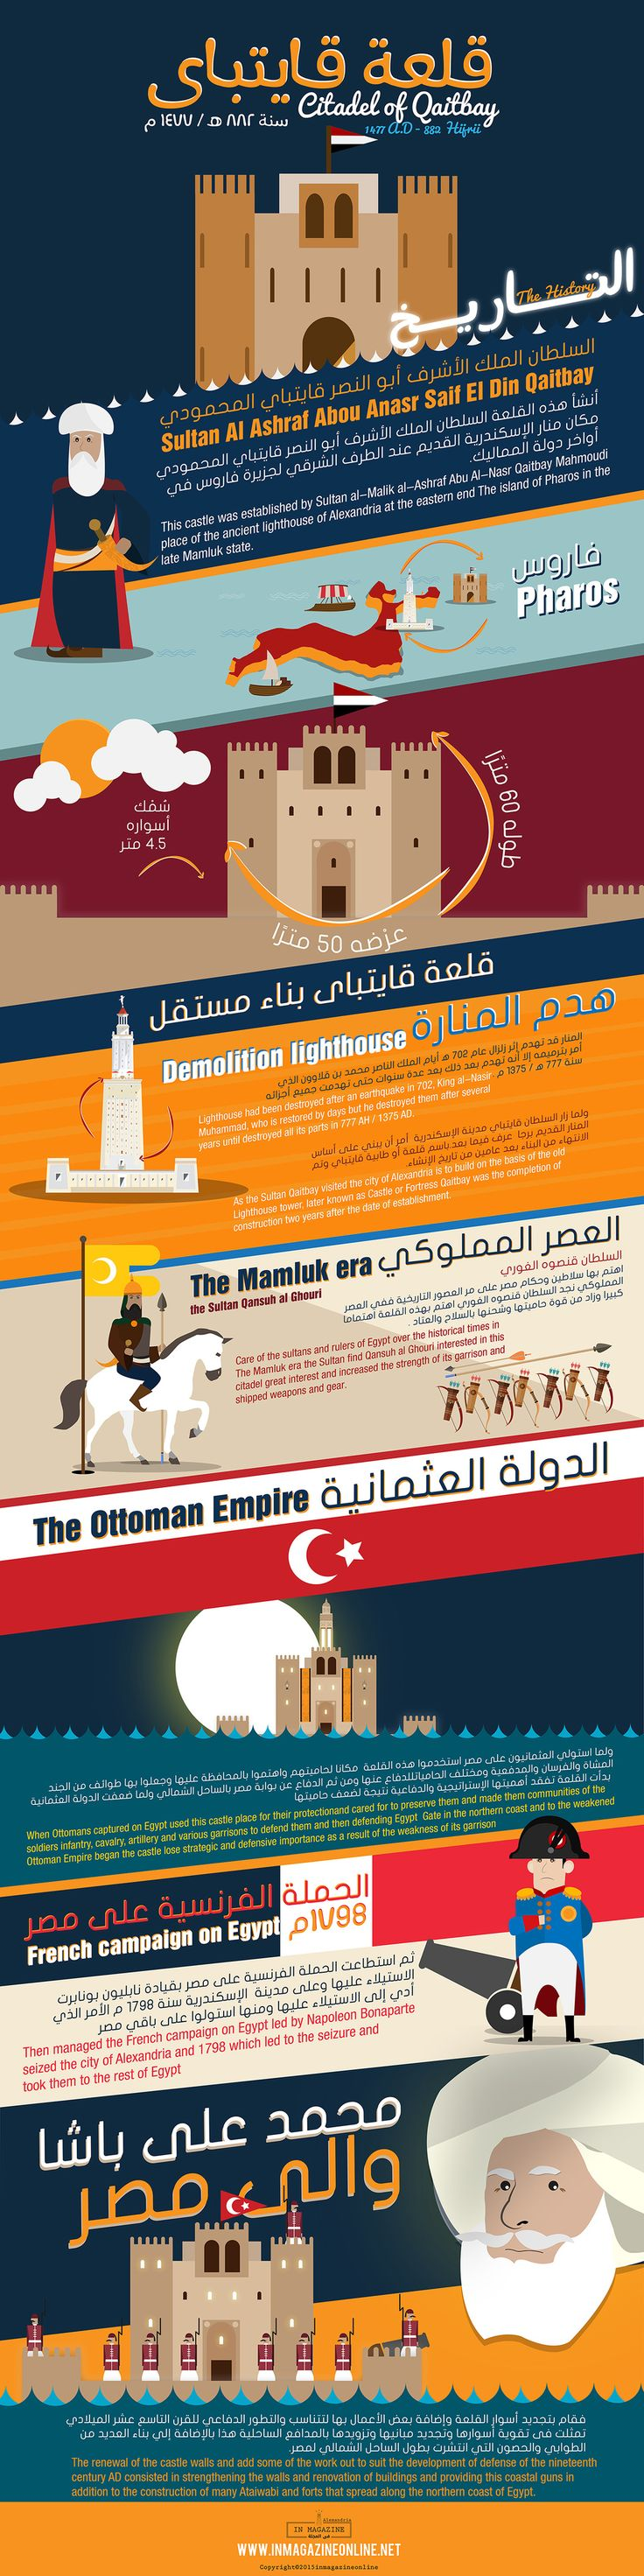 31 best love alexandria infographic images on pinterest citadel of qaitbay the history an infographic about the background history of citadel malvernweather Image collections